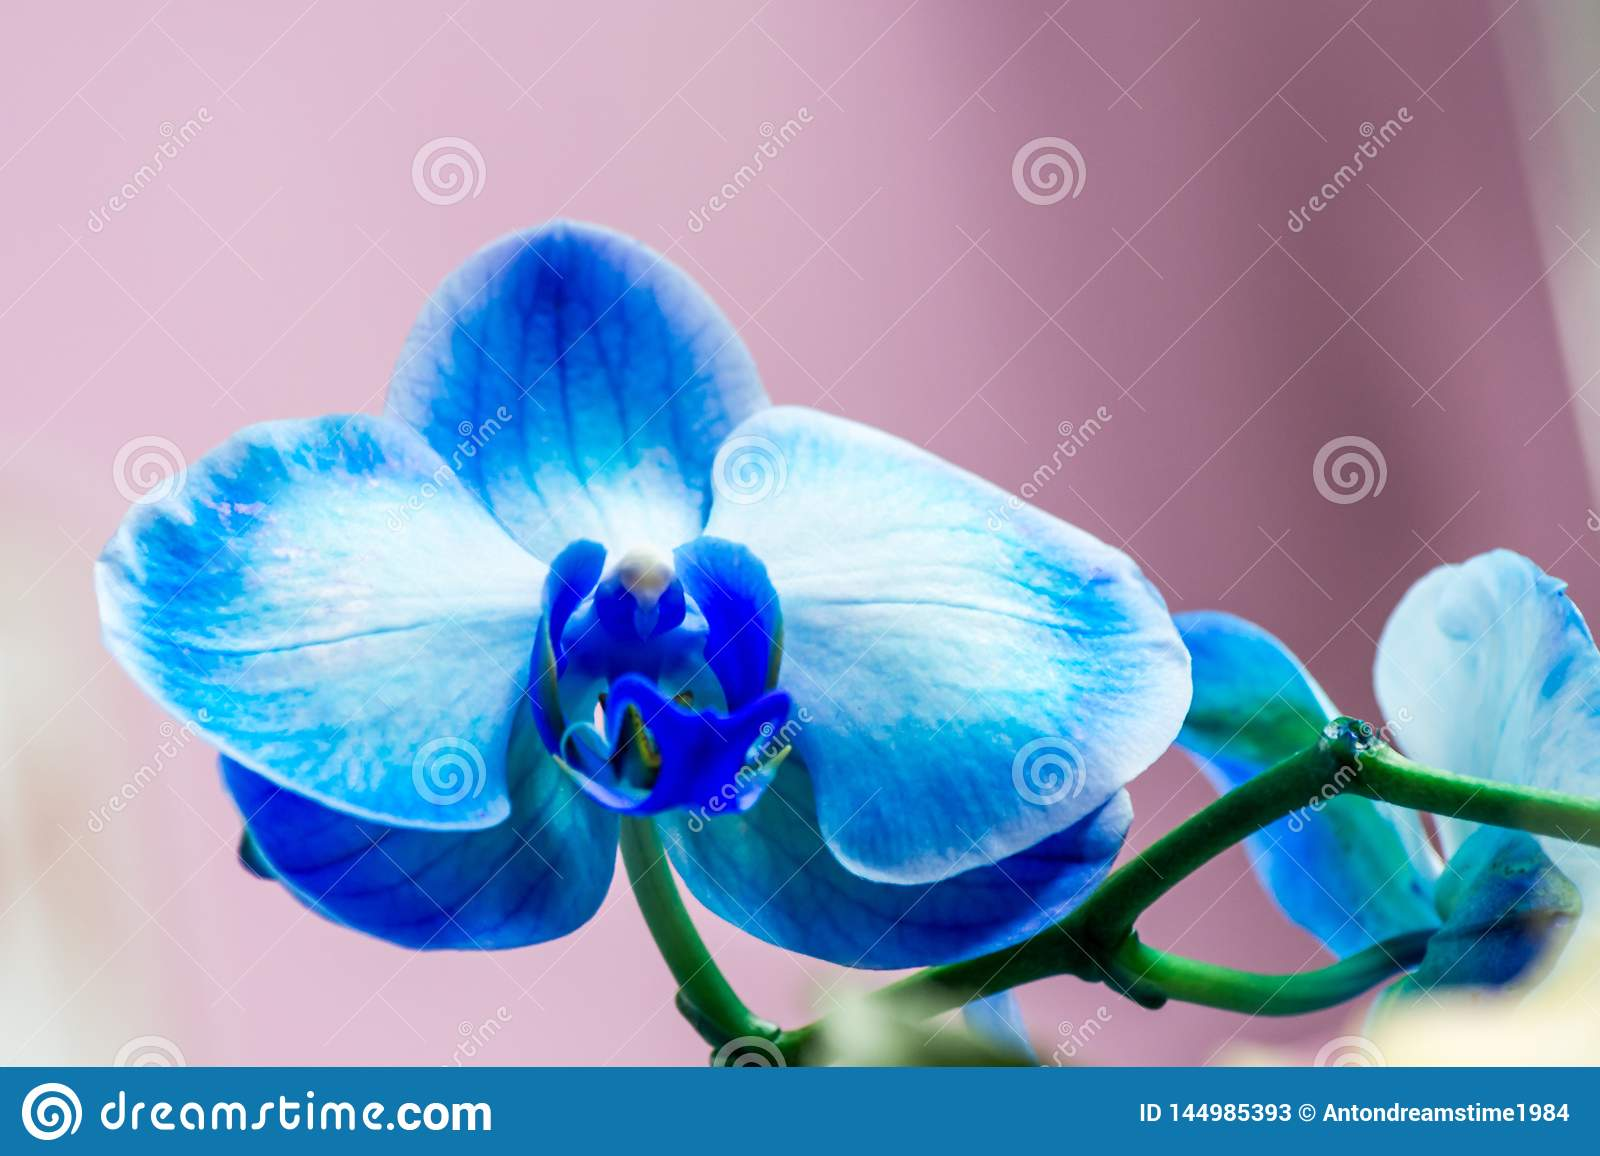 Bright bud of blue color orchid flower close-up macro